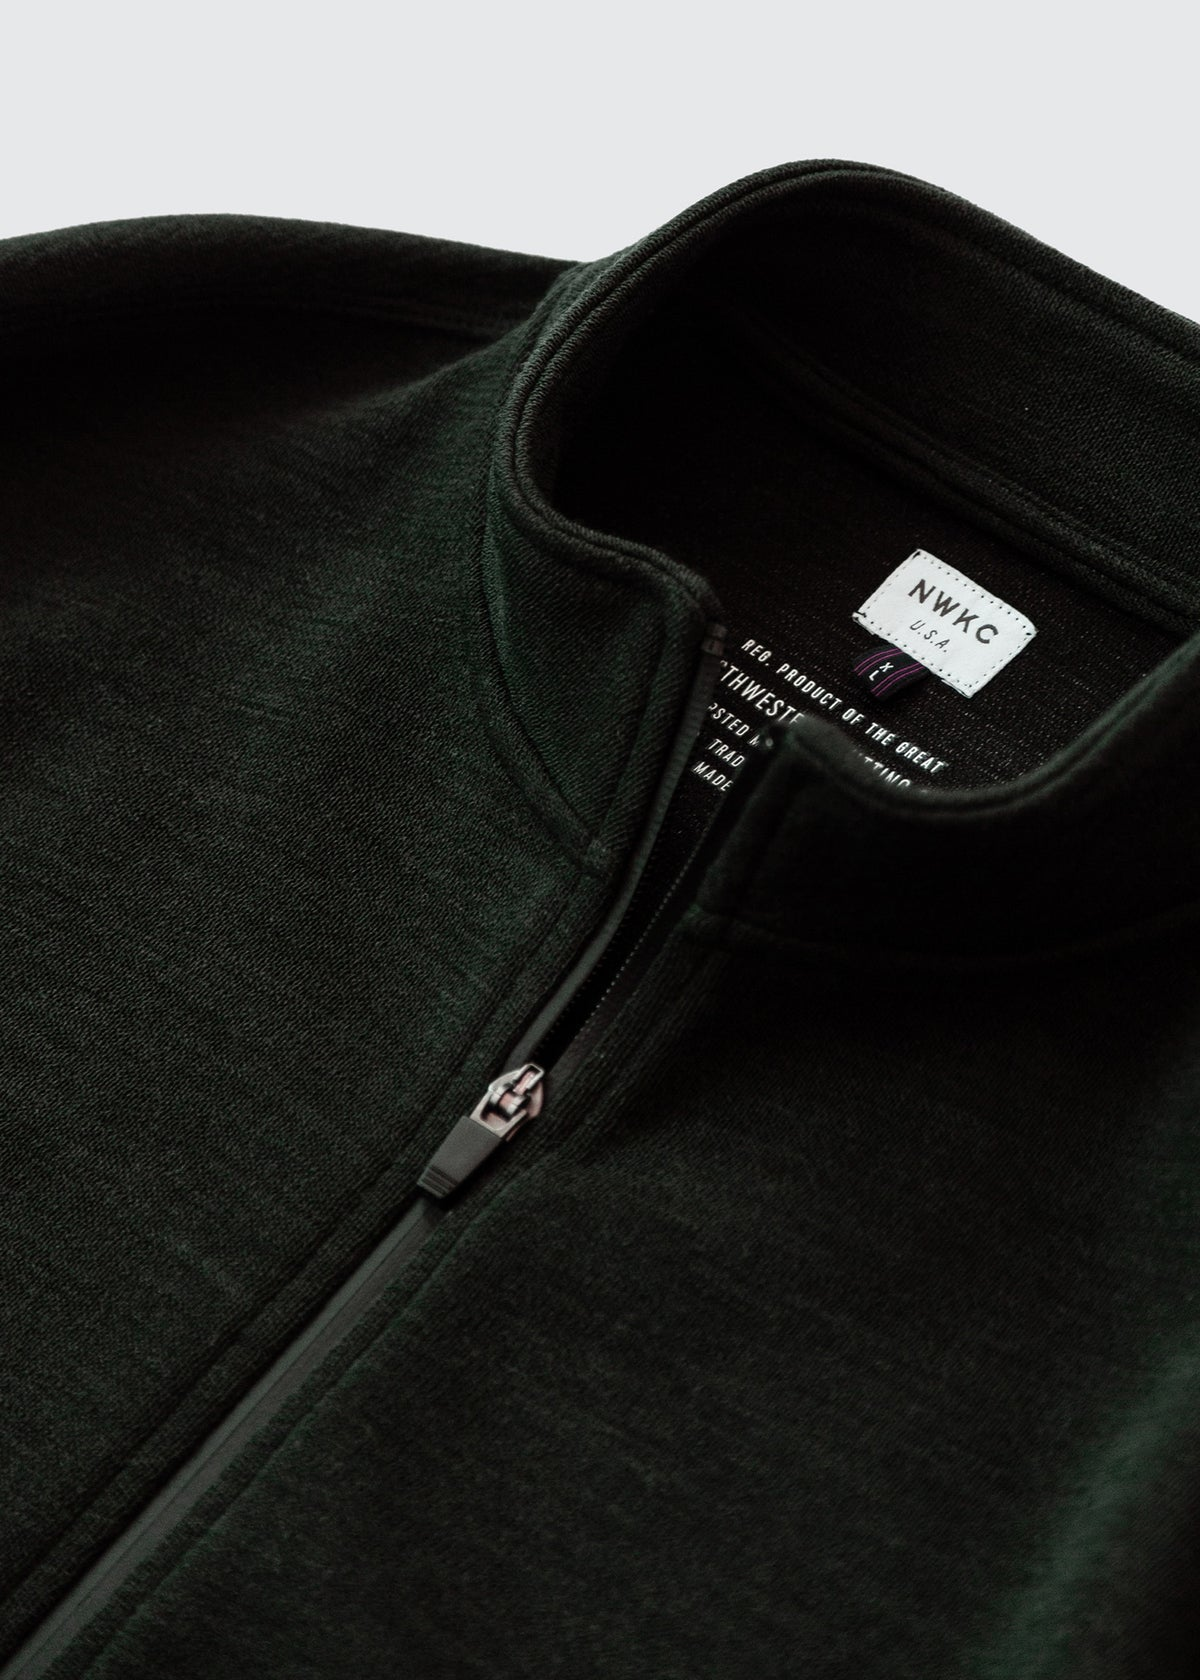 202 - NYLON COLLAR ZIP - FOREST - Wilson & Willy's - MPLS Neighbor Goods